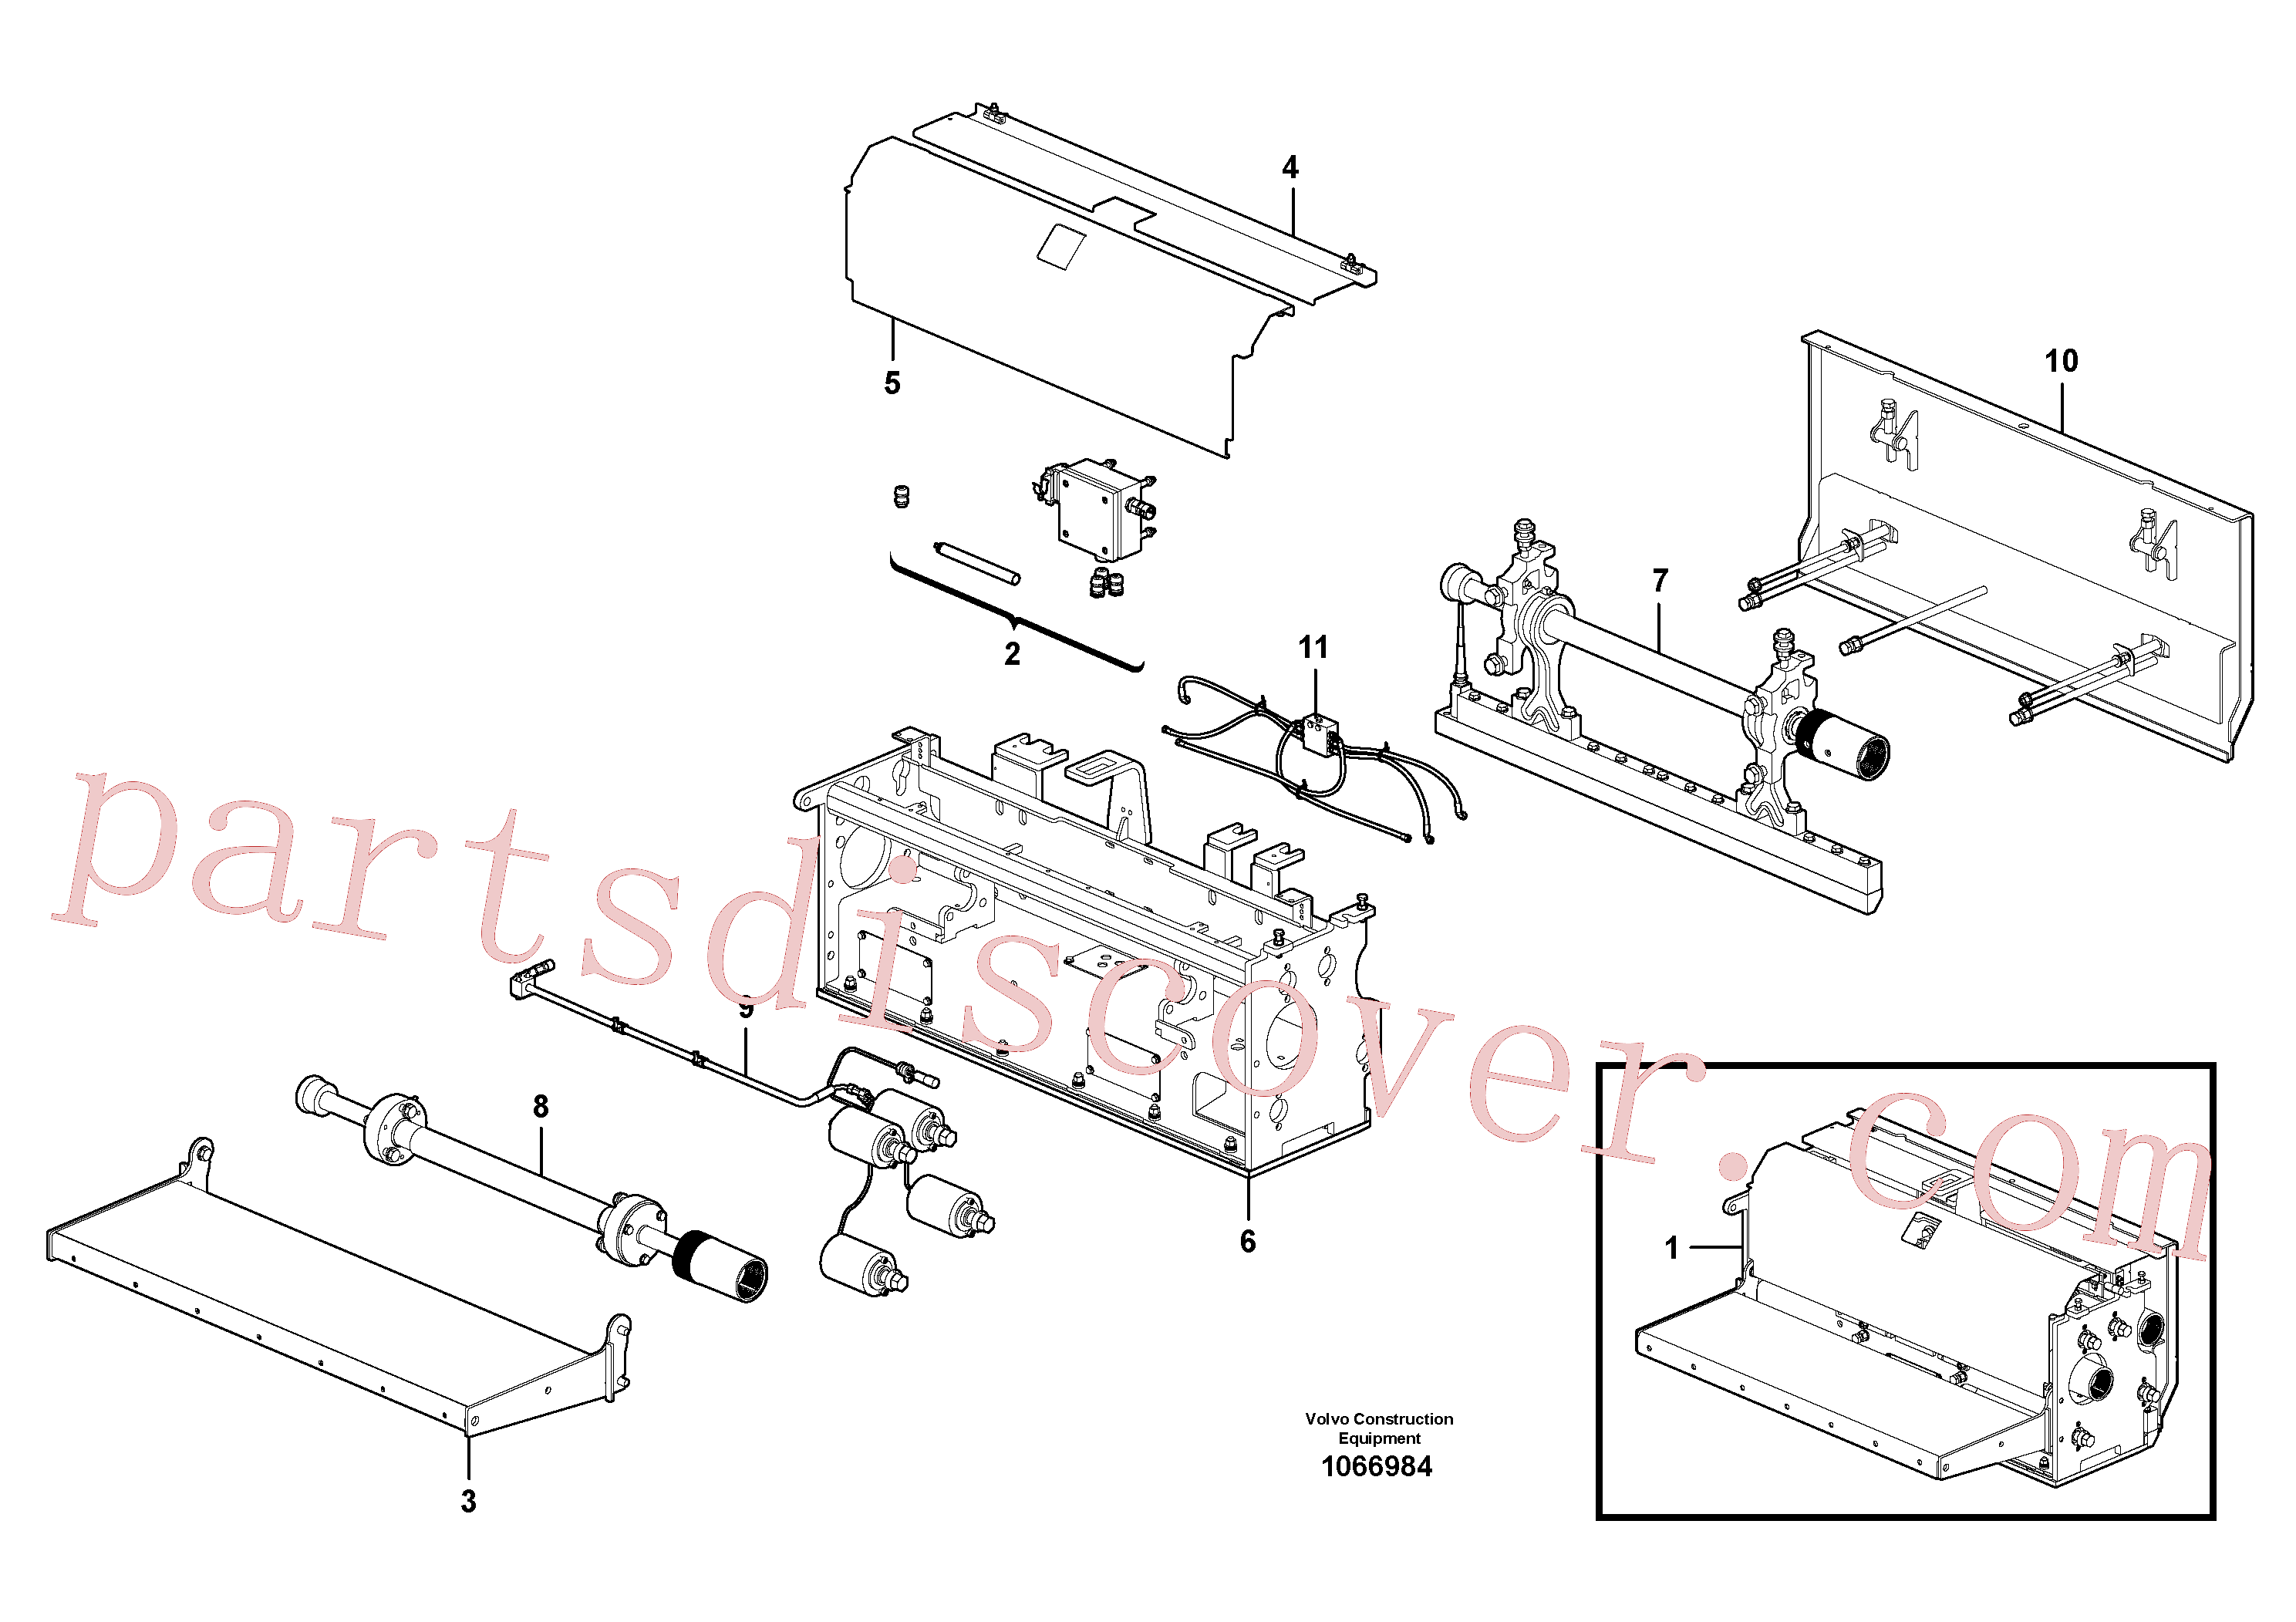 RM87968061 for Volvo Extension(1066984 assembly)